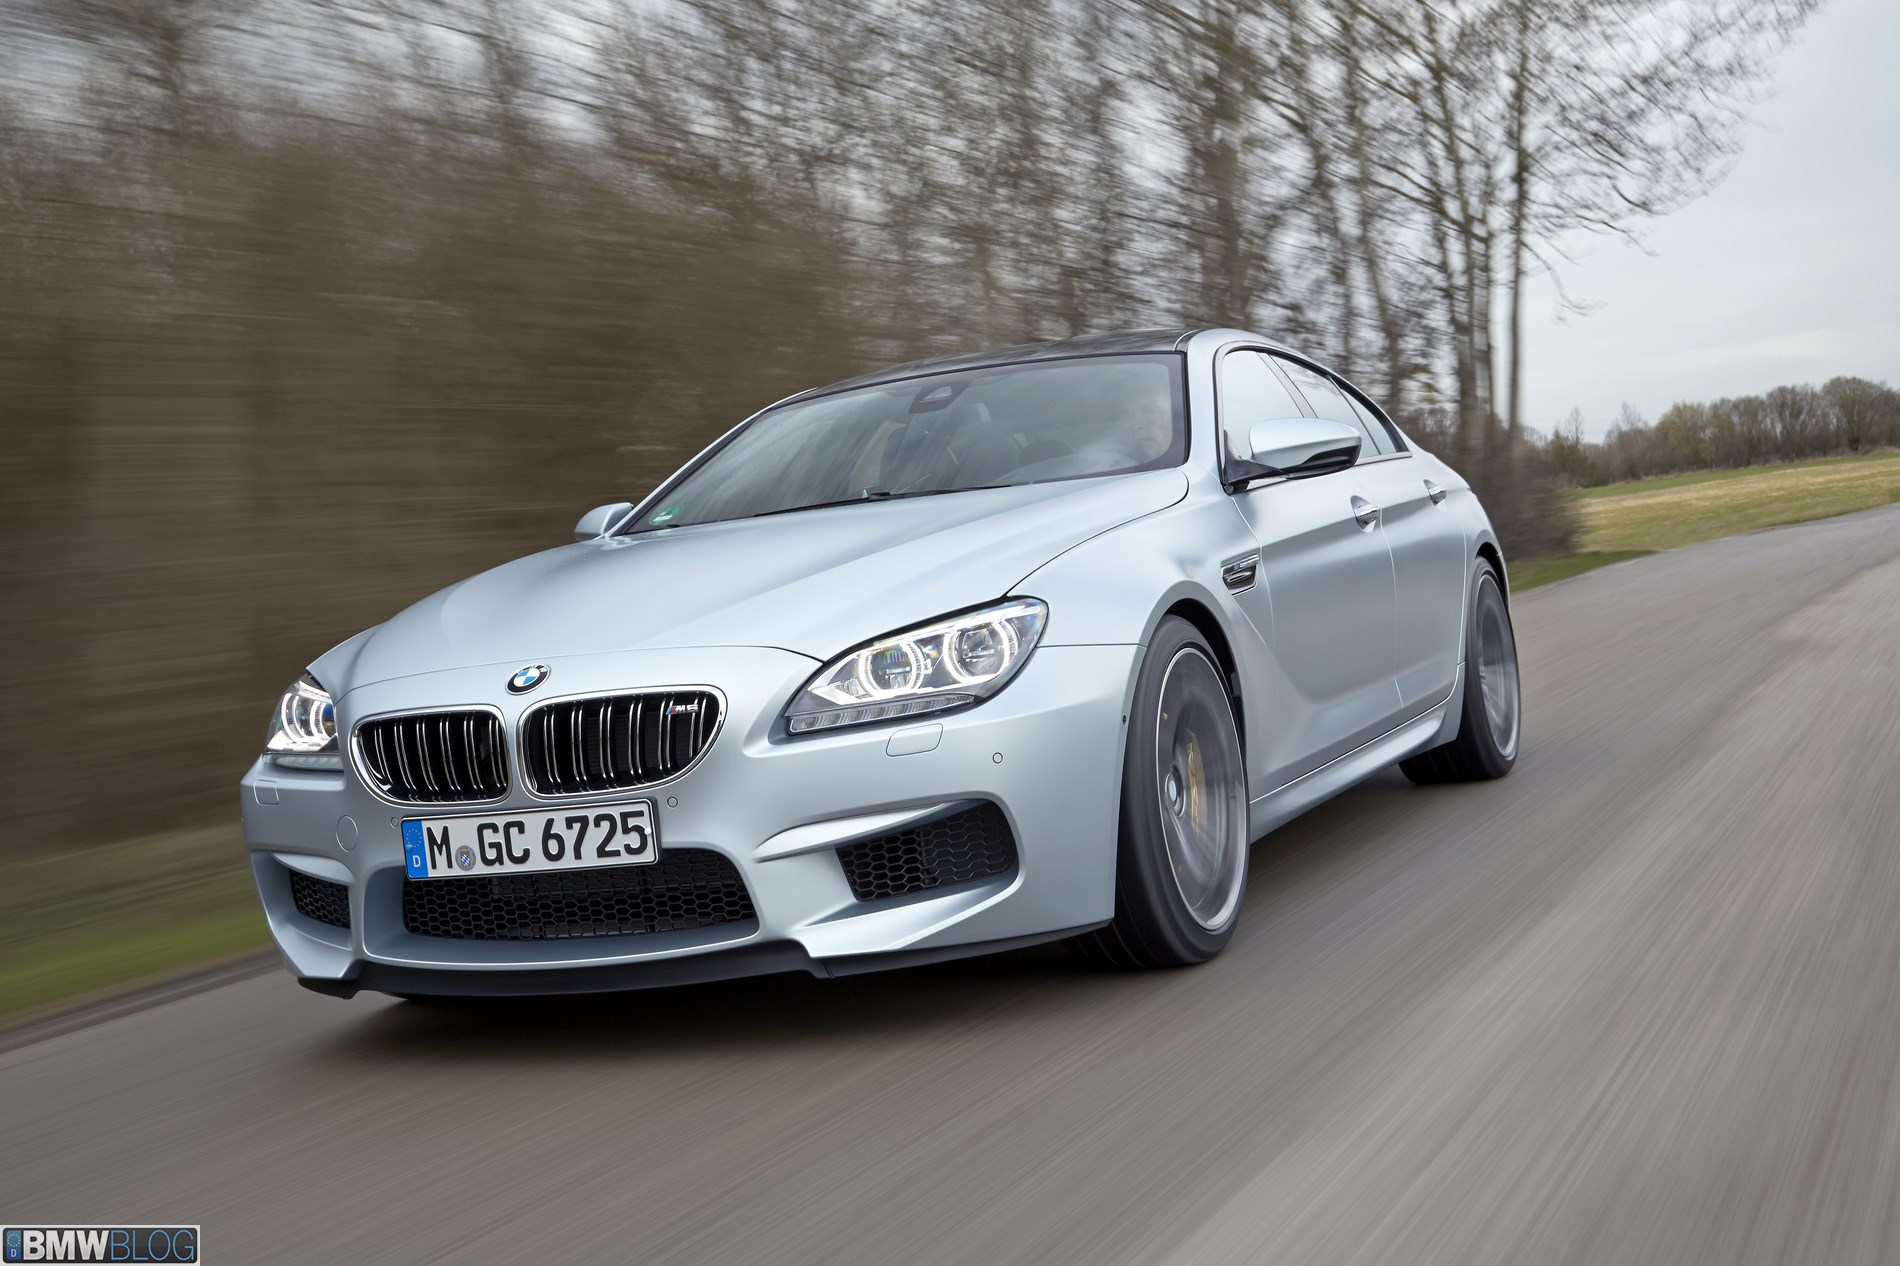 2014 bmw m6 gran coupe images 112